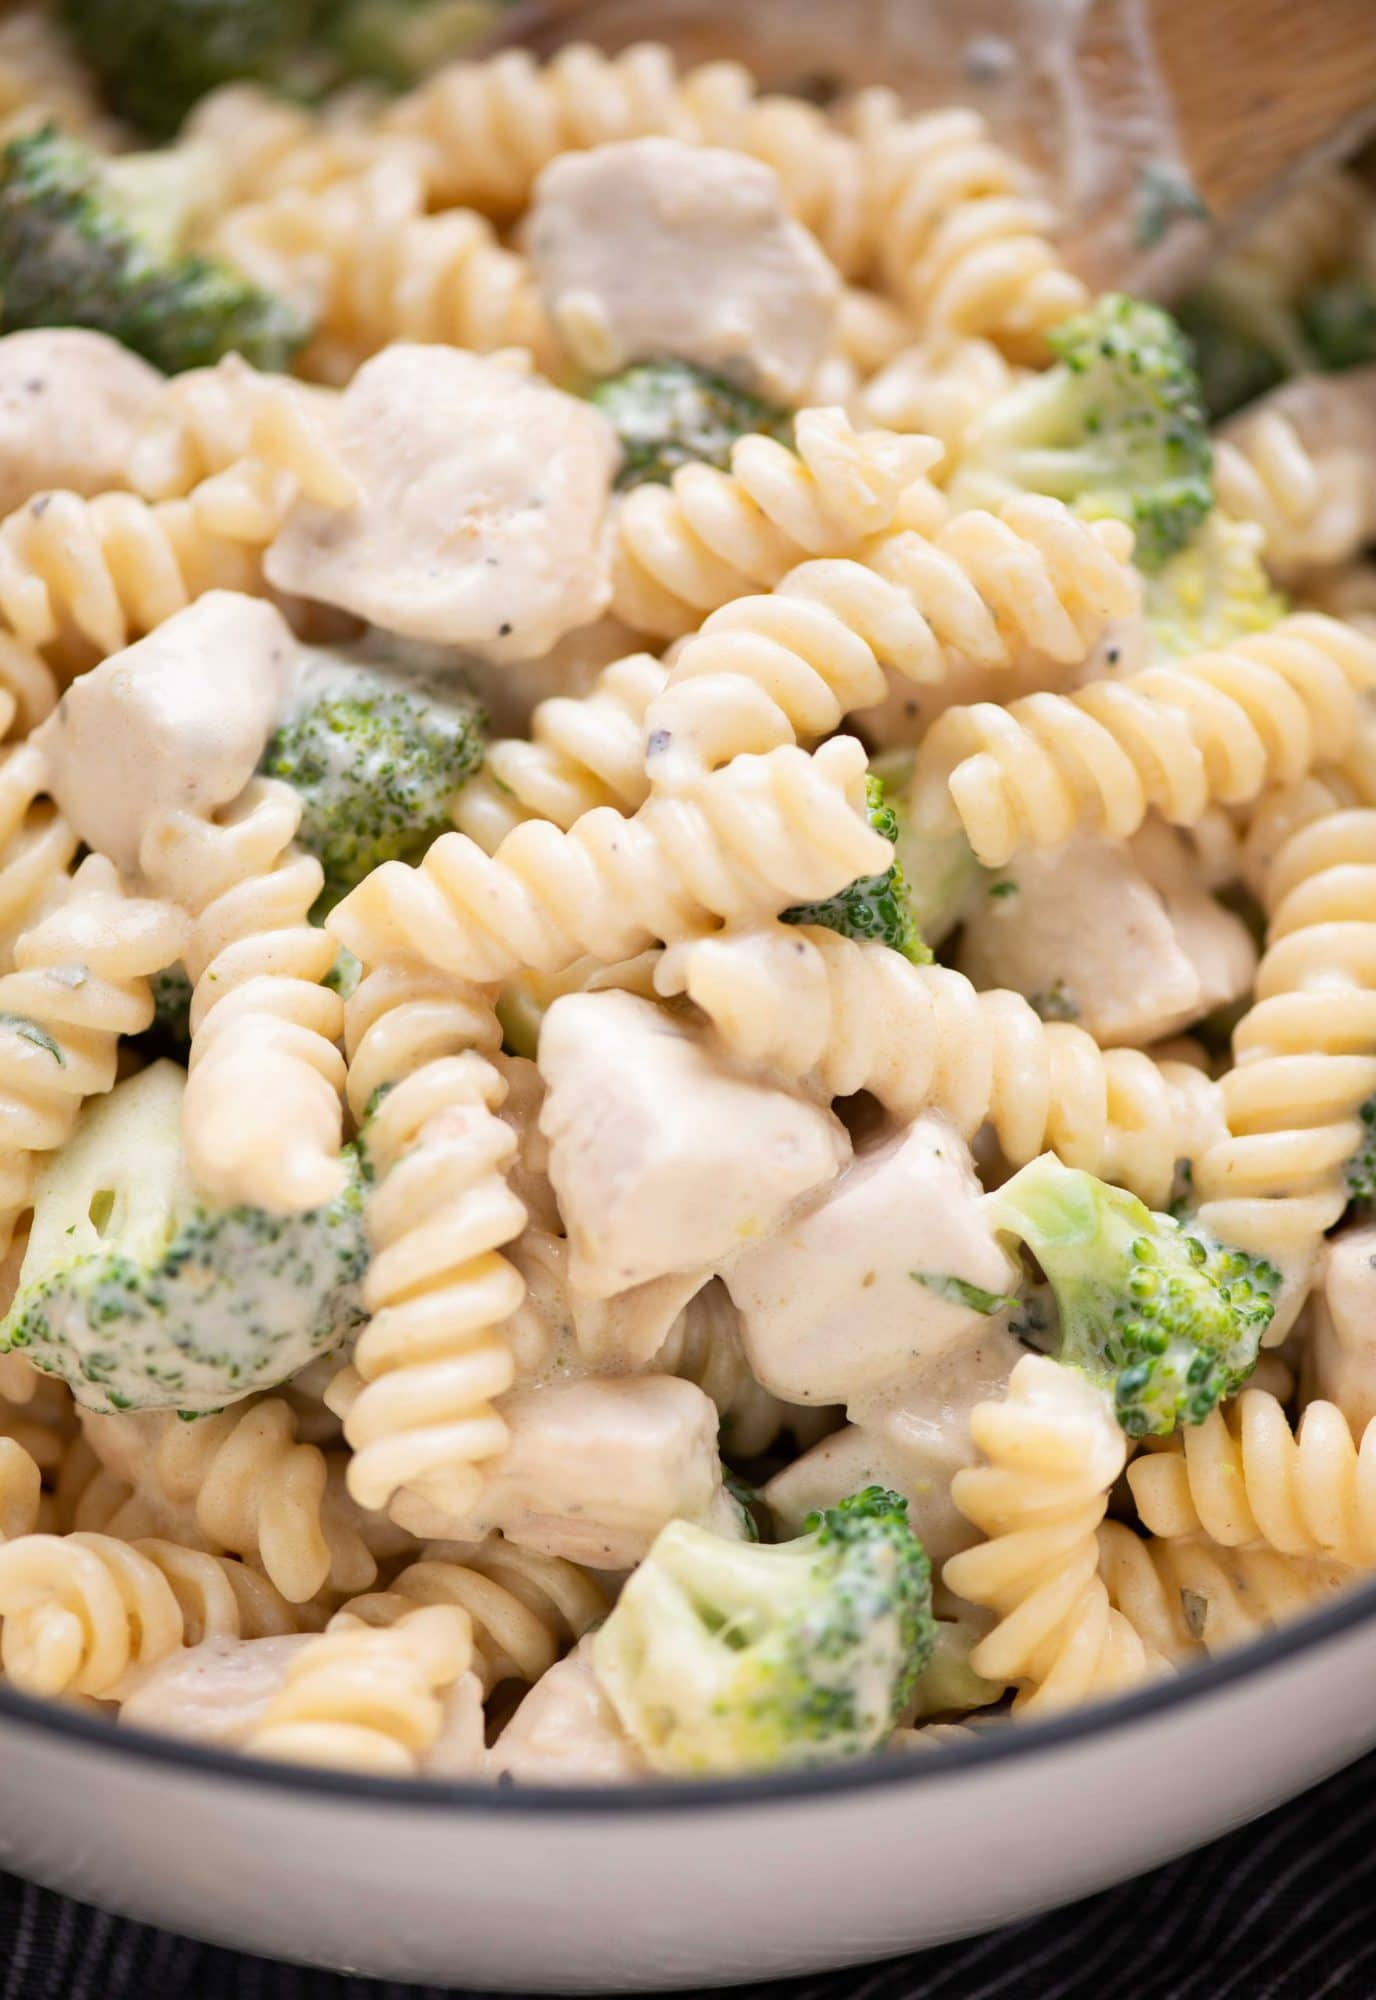 Creamy Chicken broccoli pasta is a comforting dinner recipe, that everyone loves in the family. The rich creamy garlic parmesan sauce is made with butter, flour, heavy cream and parmesan cheese.